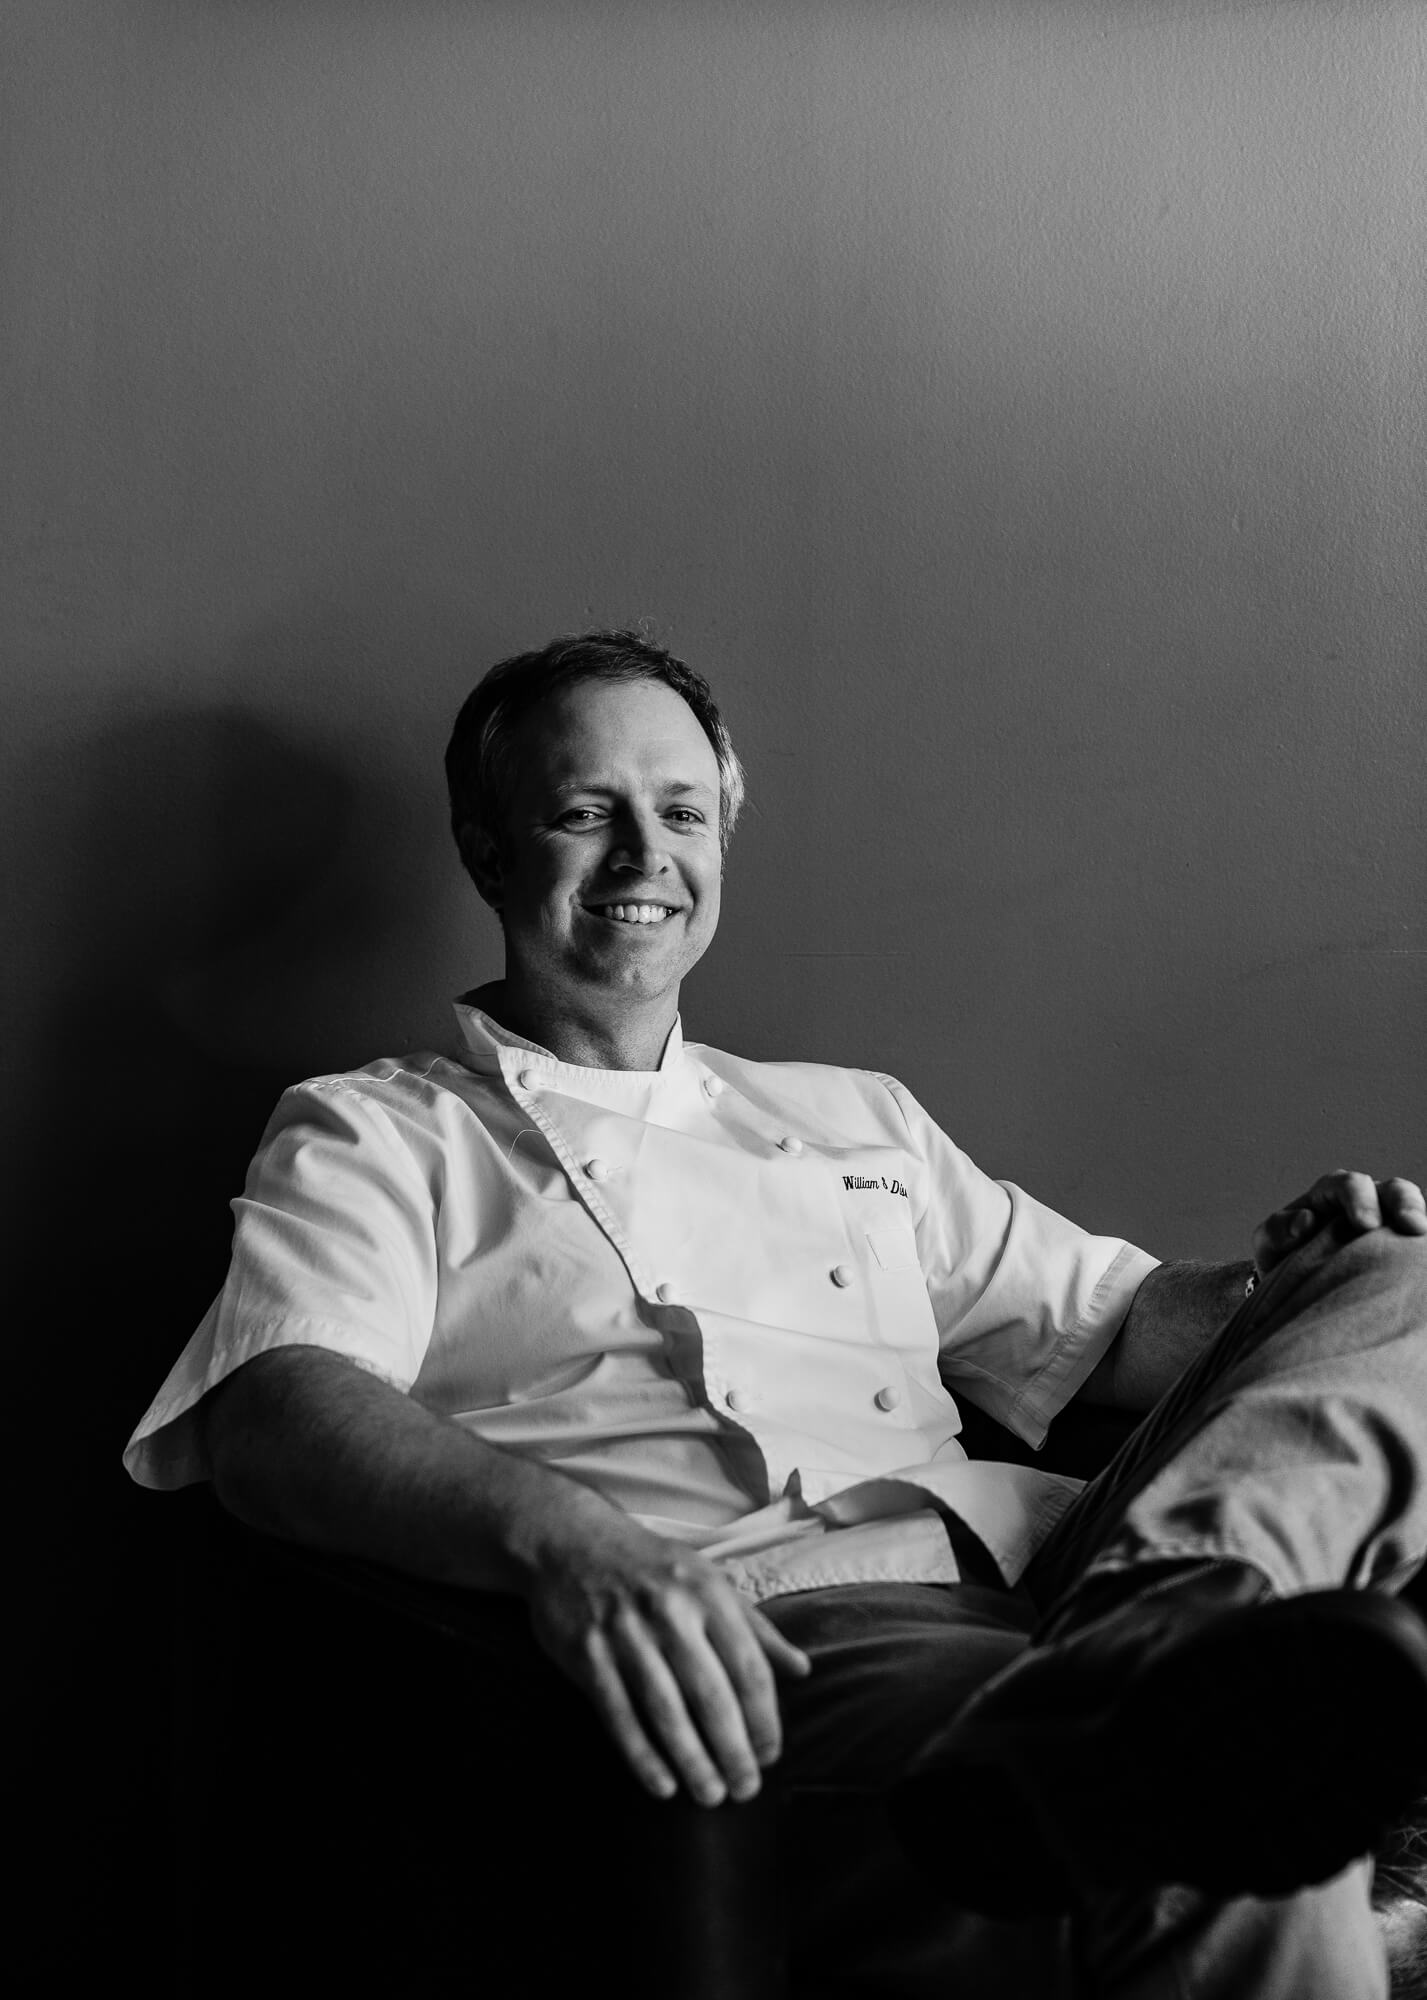 chef william dissen at the market place